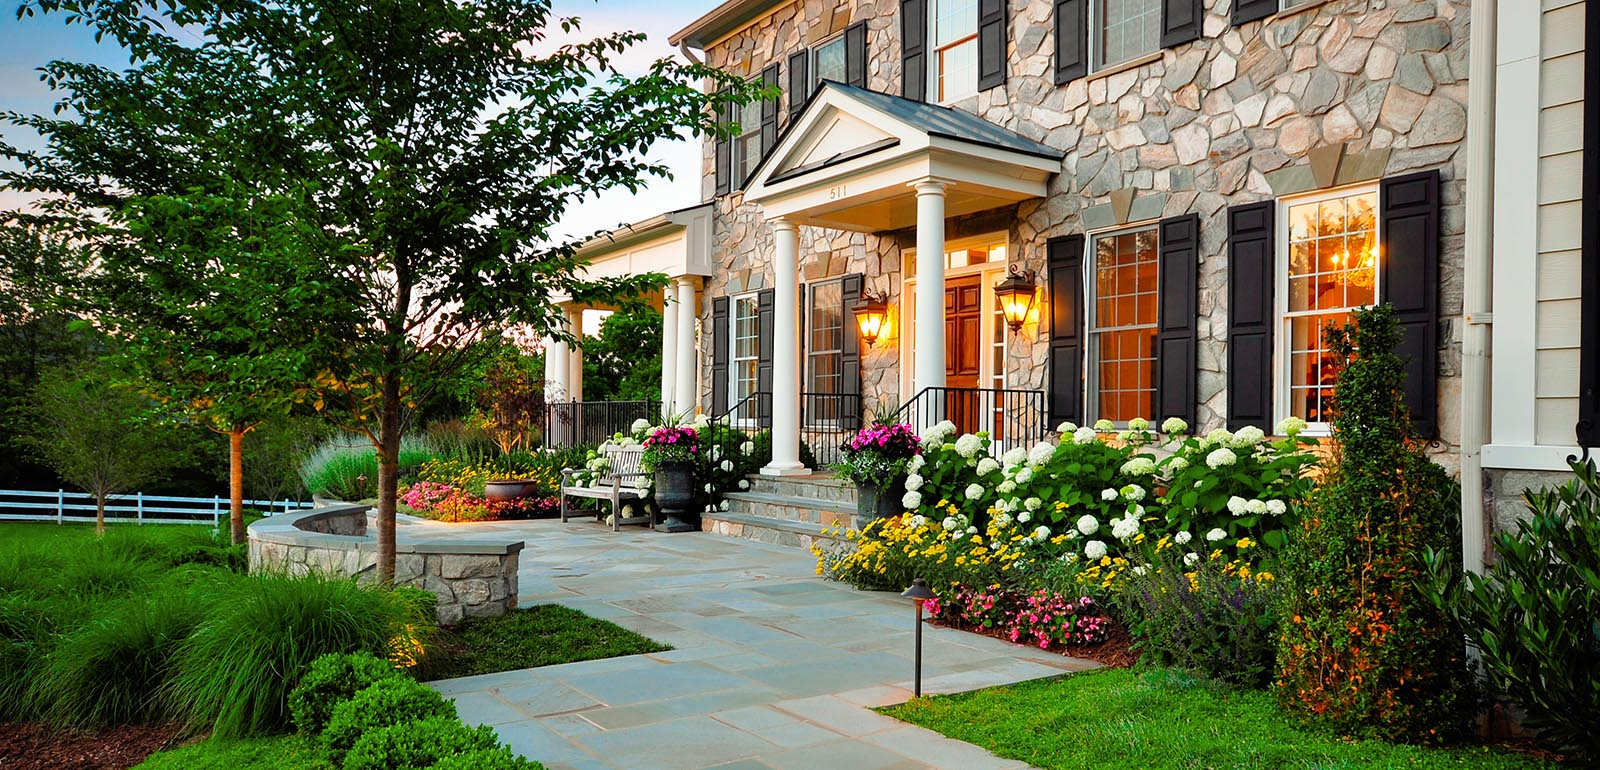 Spruce up the yard with flower beds. Forget The Traditional Look   Modern Front Yard Landscaping Ideas